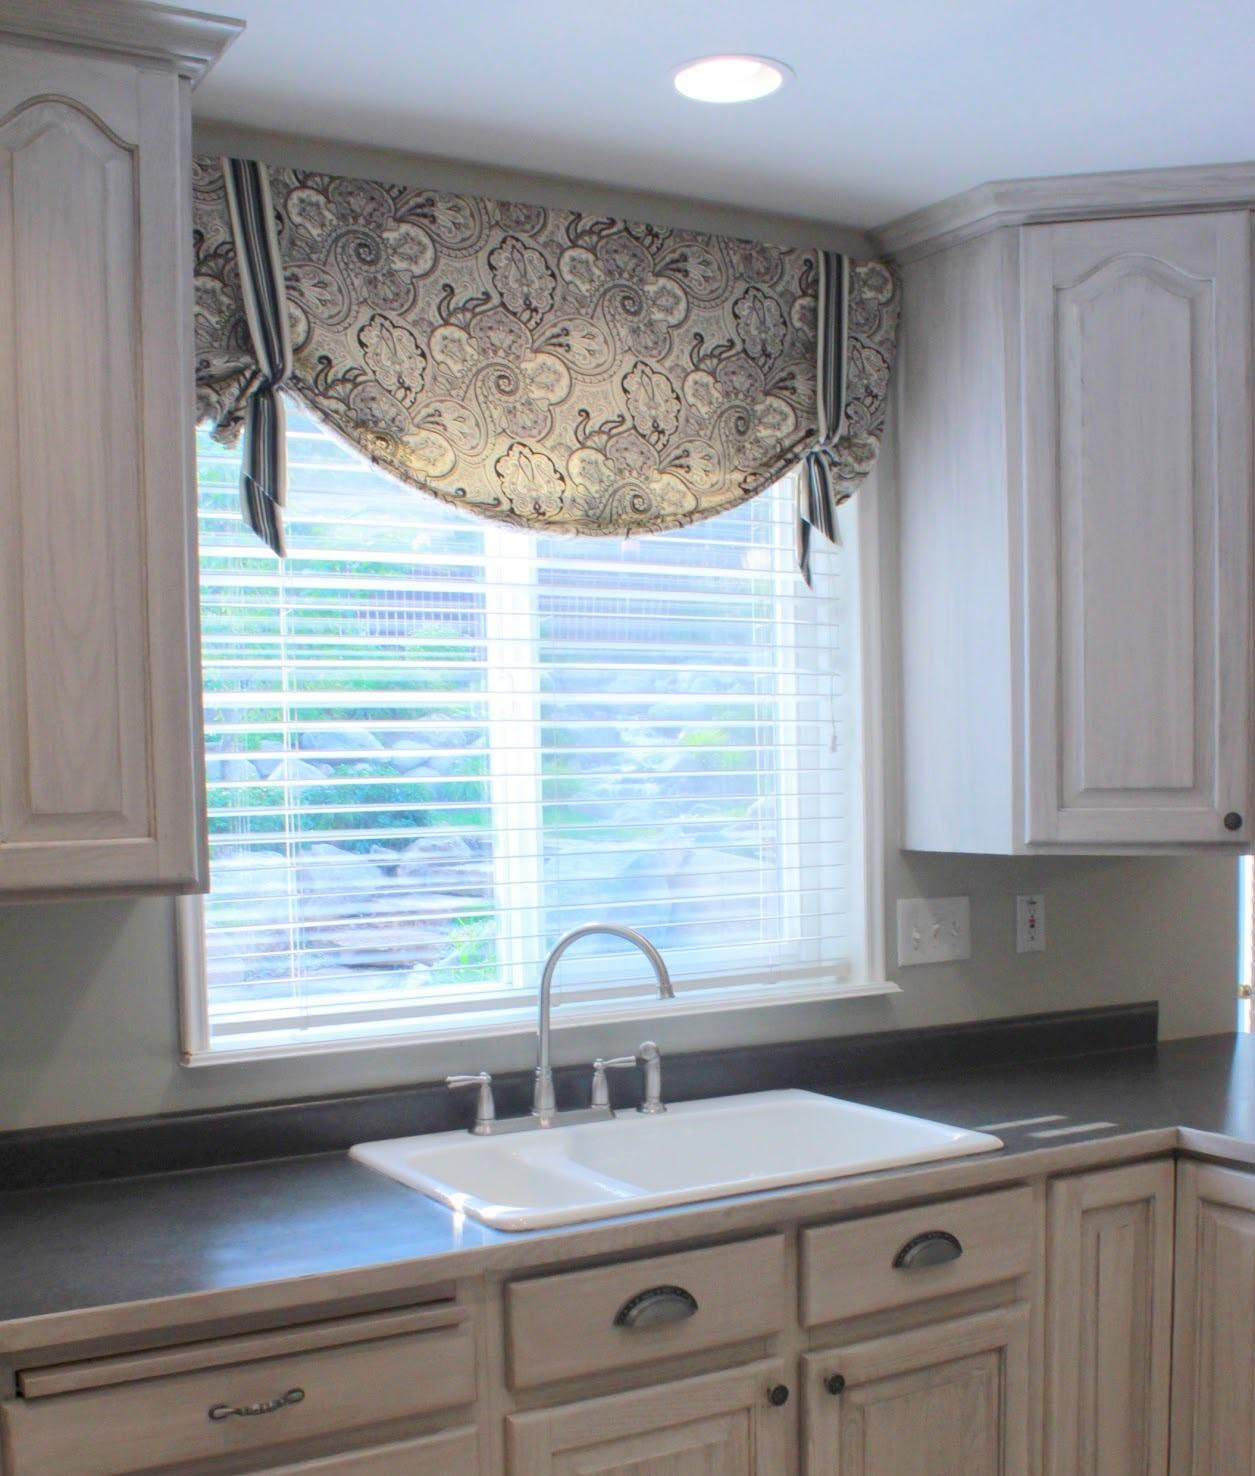 Kitchen Valances for Windows | Valances | Pinterest | Kitchen ...